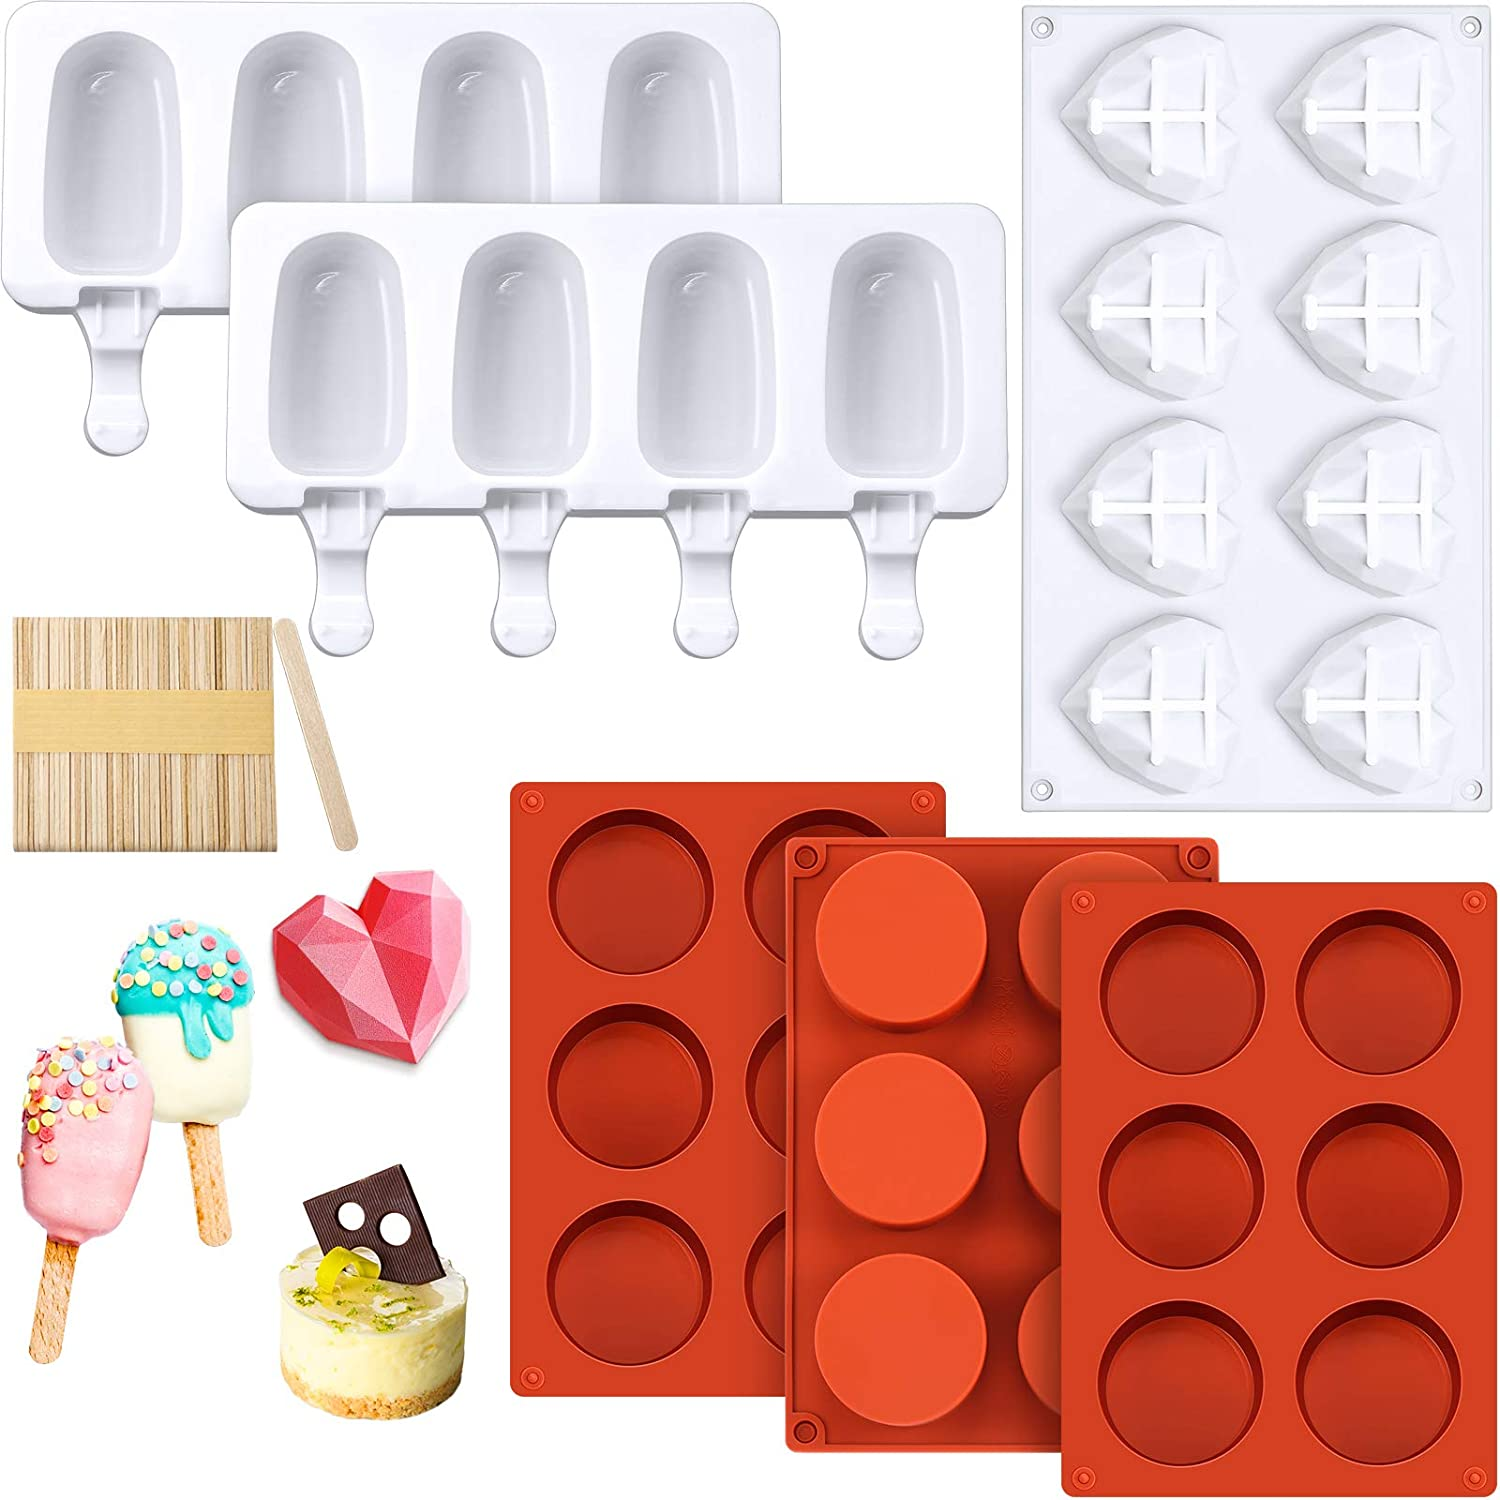 3 Pieces Round Cylinder Candy Molds 8 Cavities Diamond Heart Mold Silicone Heart Shaped Cake Mold, 2 Pieces Silicone Popsicle Molds 4 Cavities Ice Pop Molds with 50 Pieces Wooden Sticks